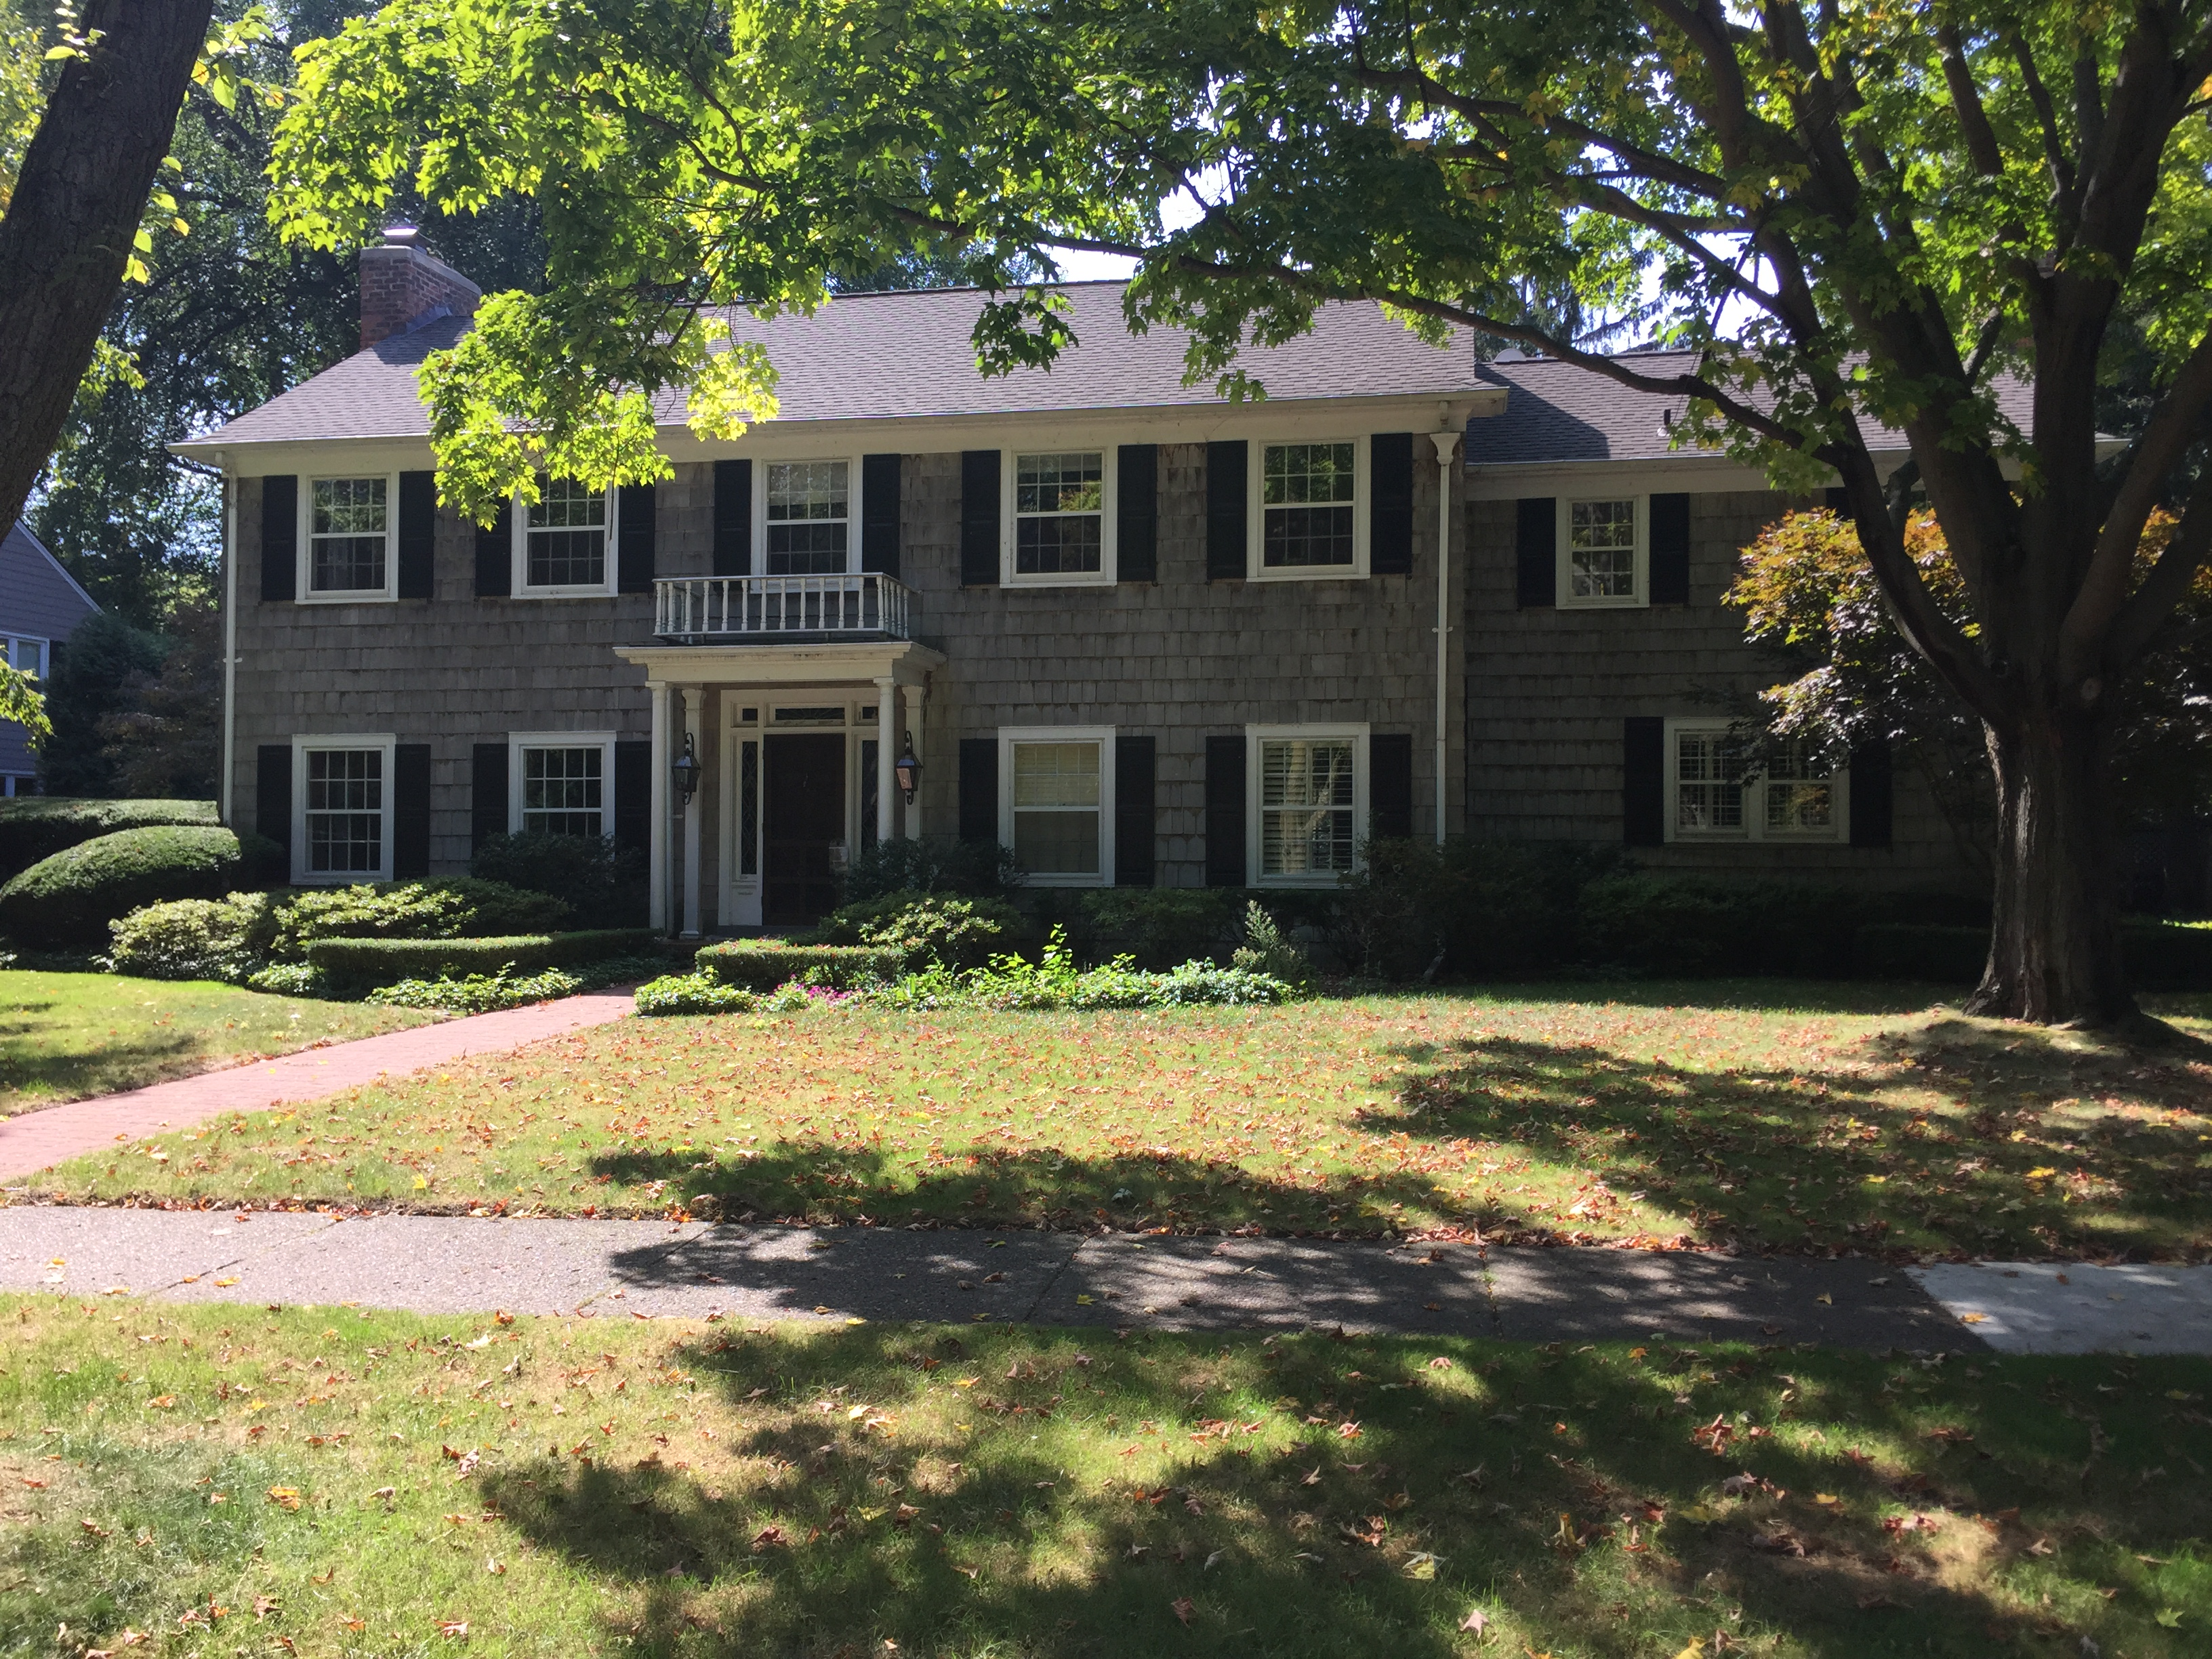 69 Touraine, Grosse Pointe Farms, Michigan 48236